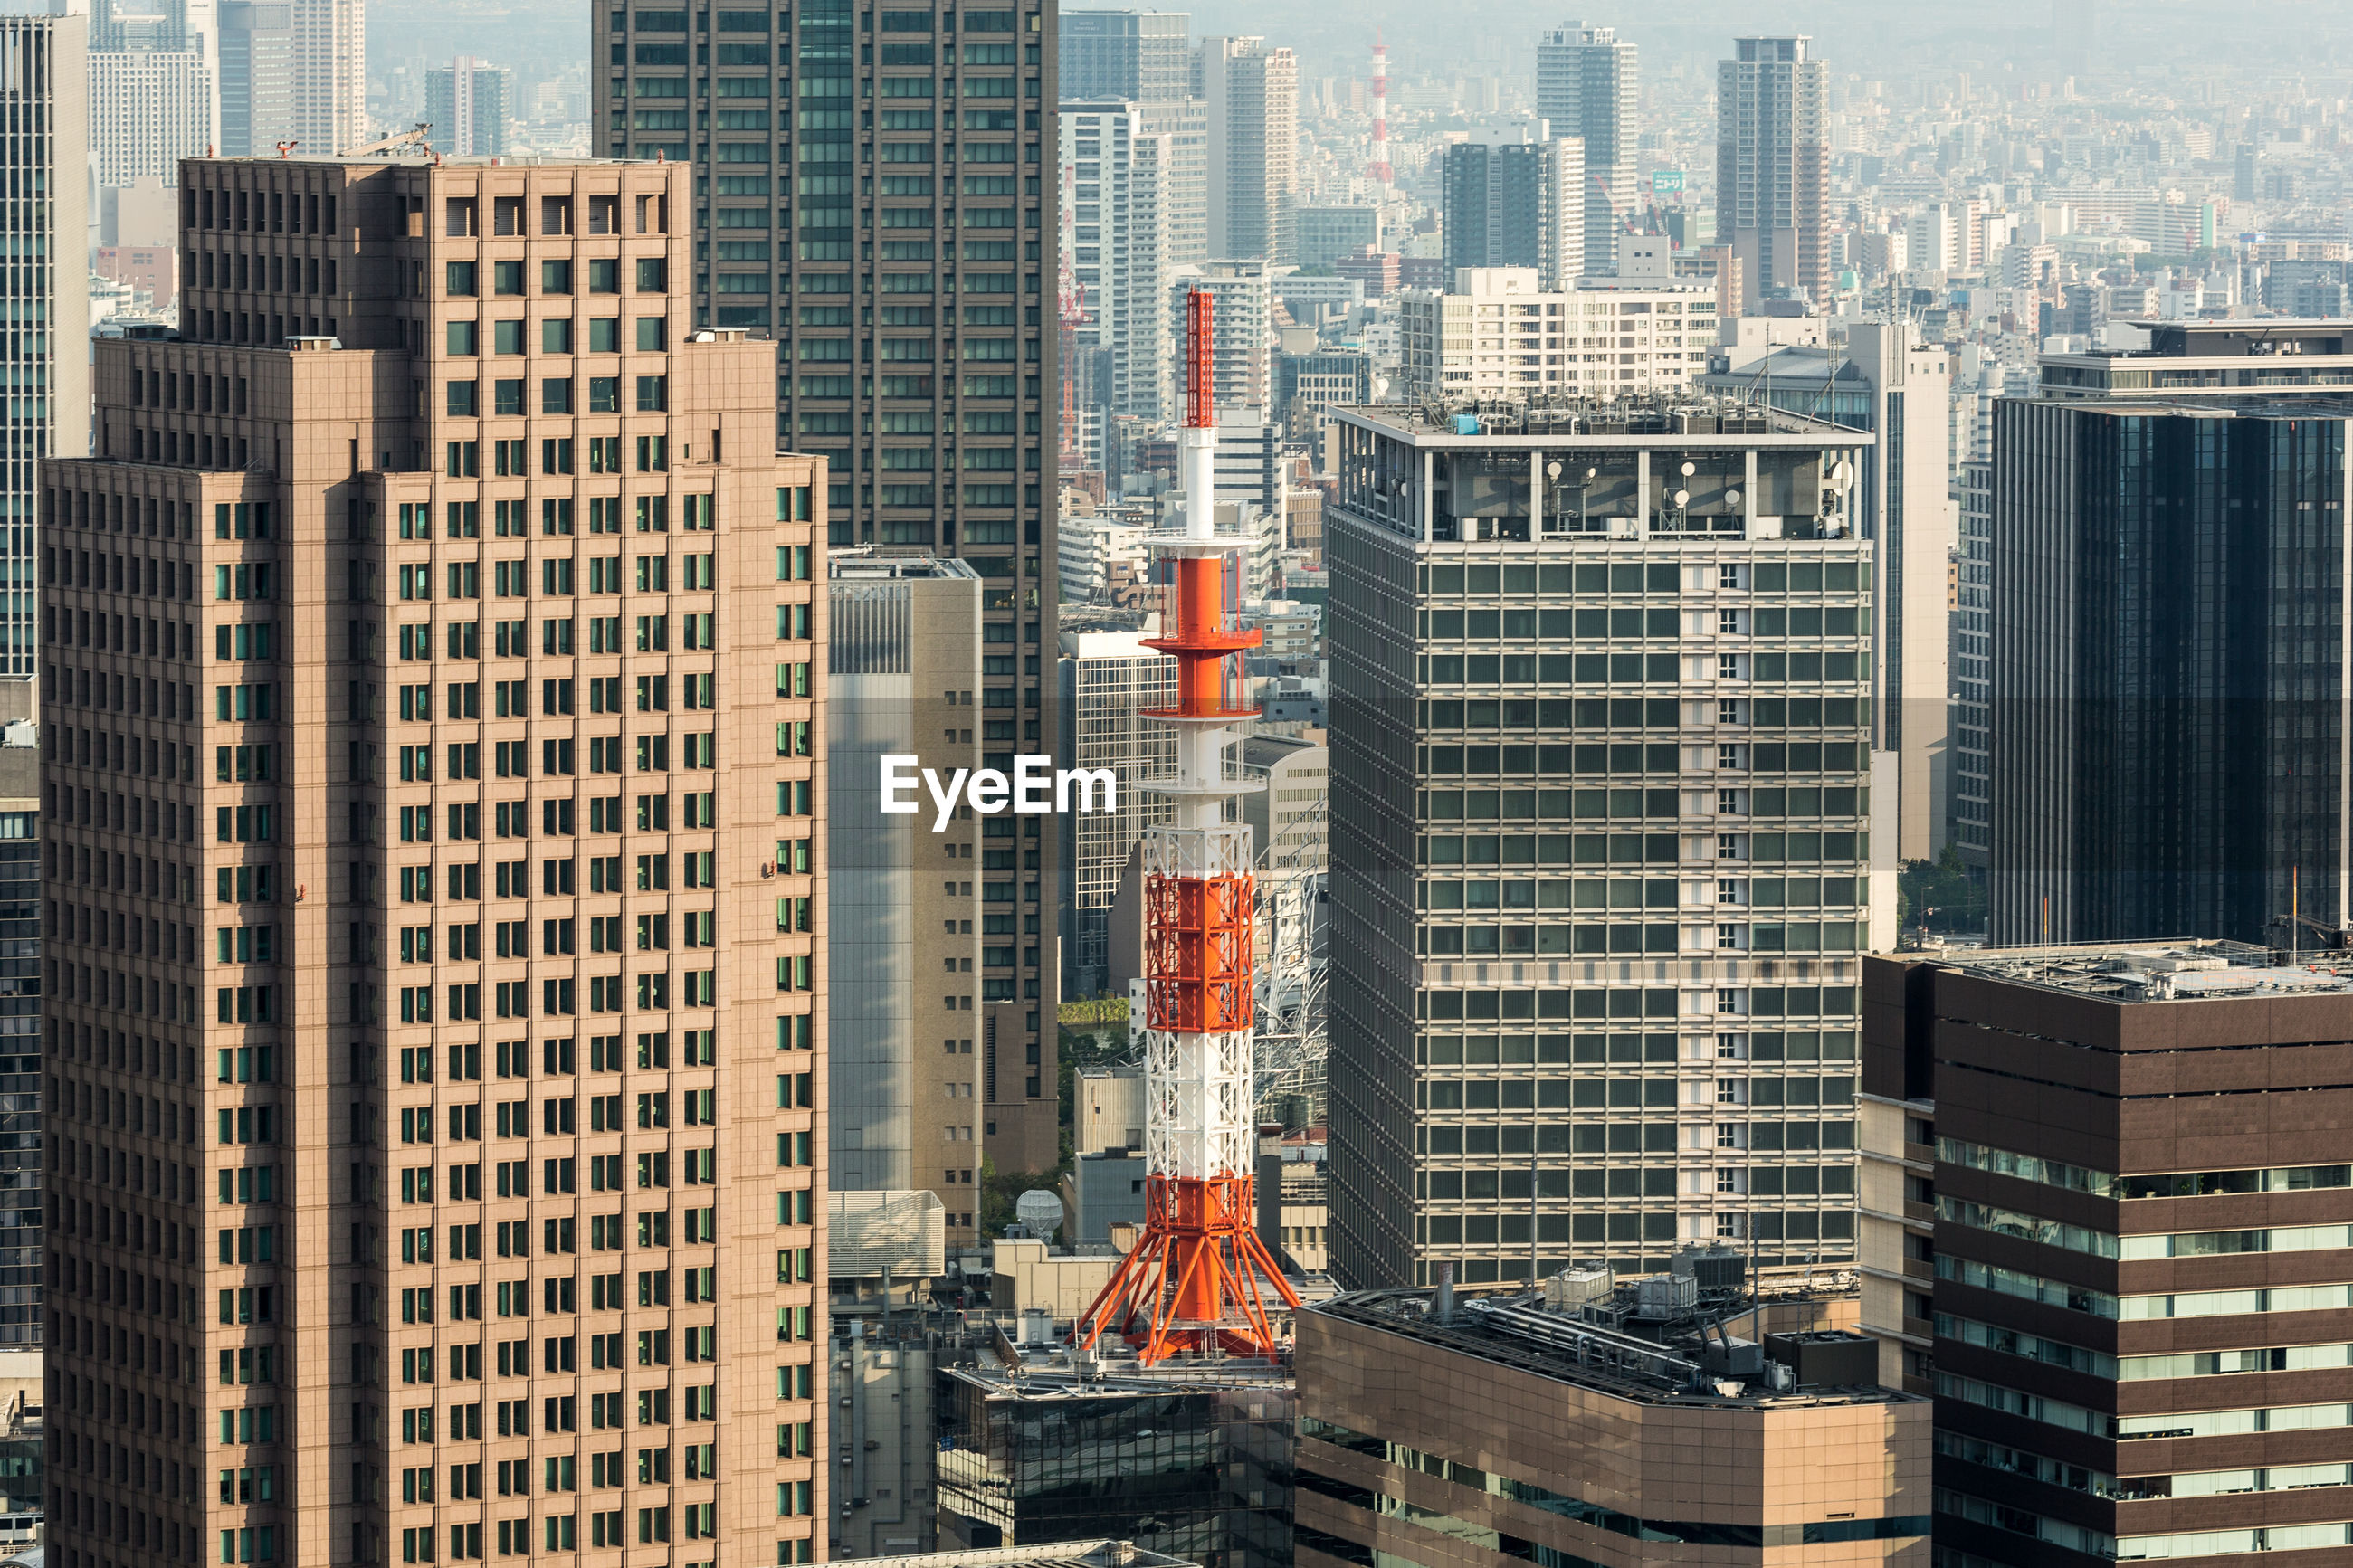 Skyscrapers in japan